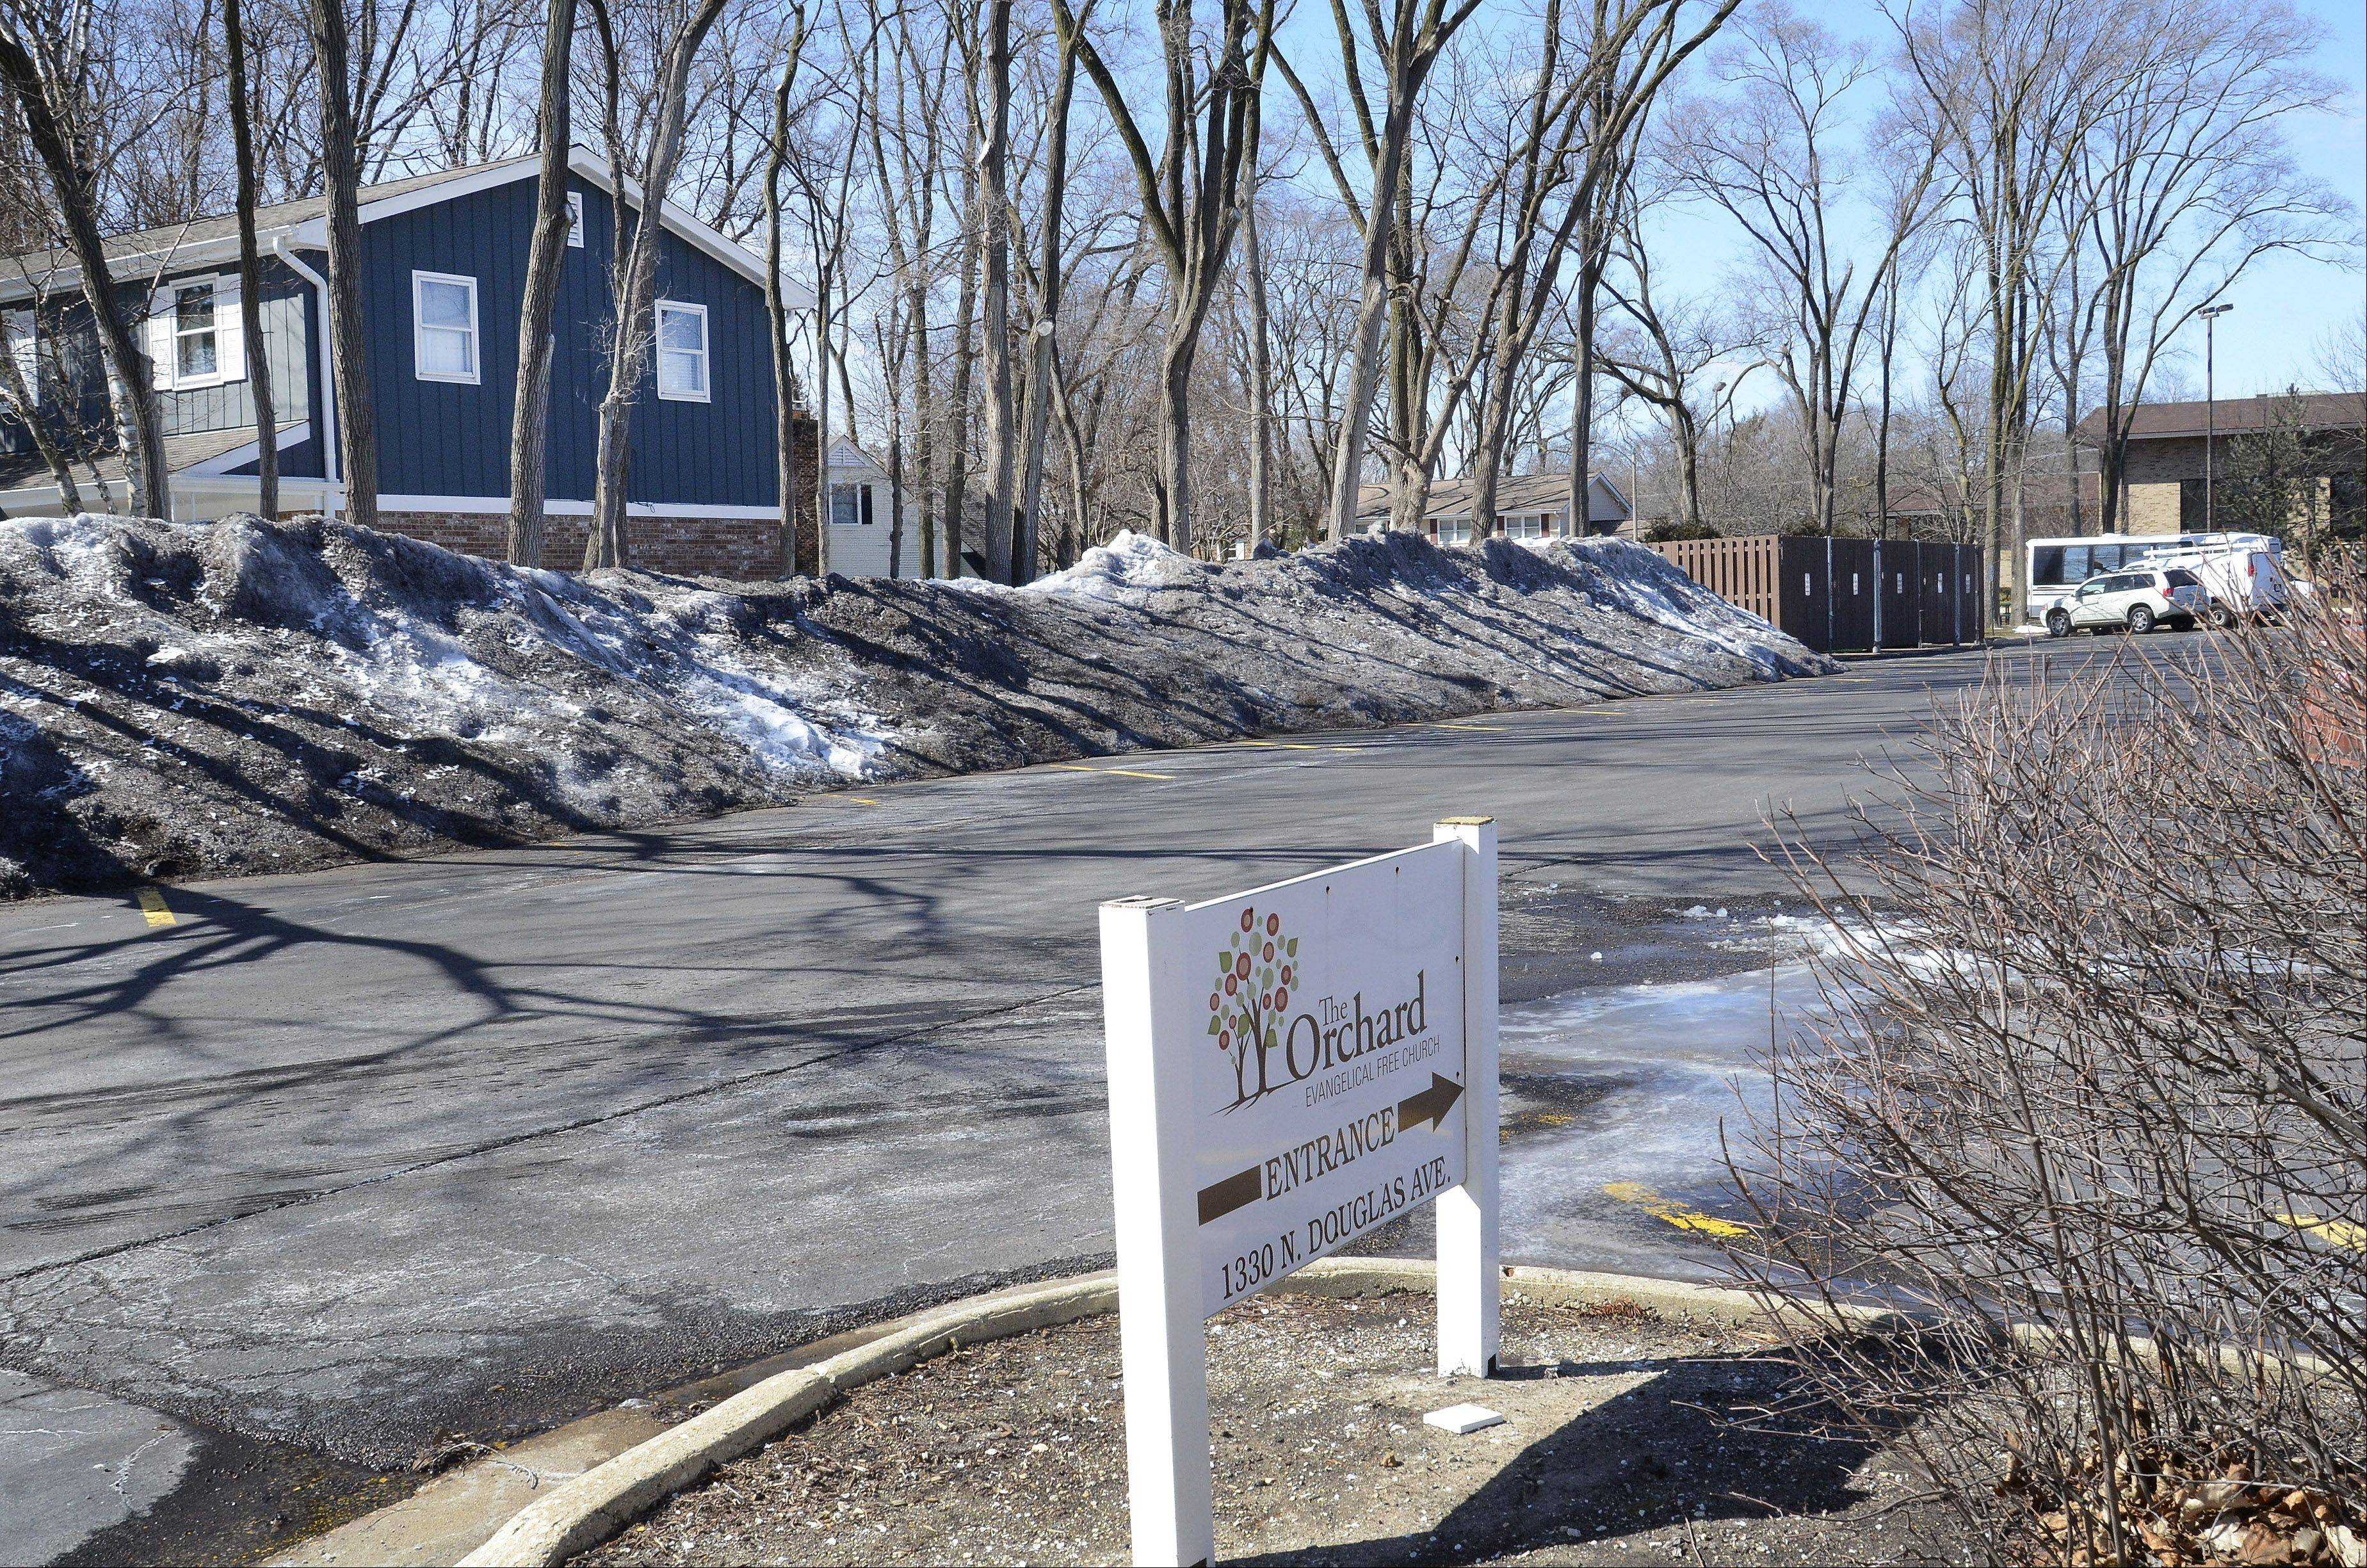 The Orchard Evangelical Free Church in Arlington Heights has yet to submit formal plans to the village for their proposal to tear down neighboring homes it owns to expand parking. The proposal has stirred outspoken opposition from the church's neighbors.